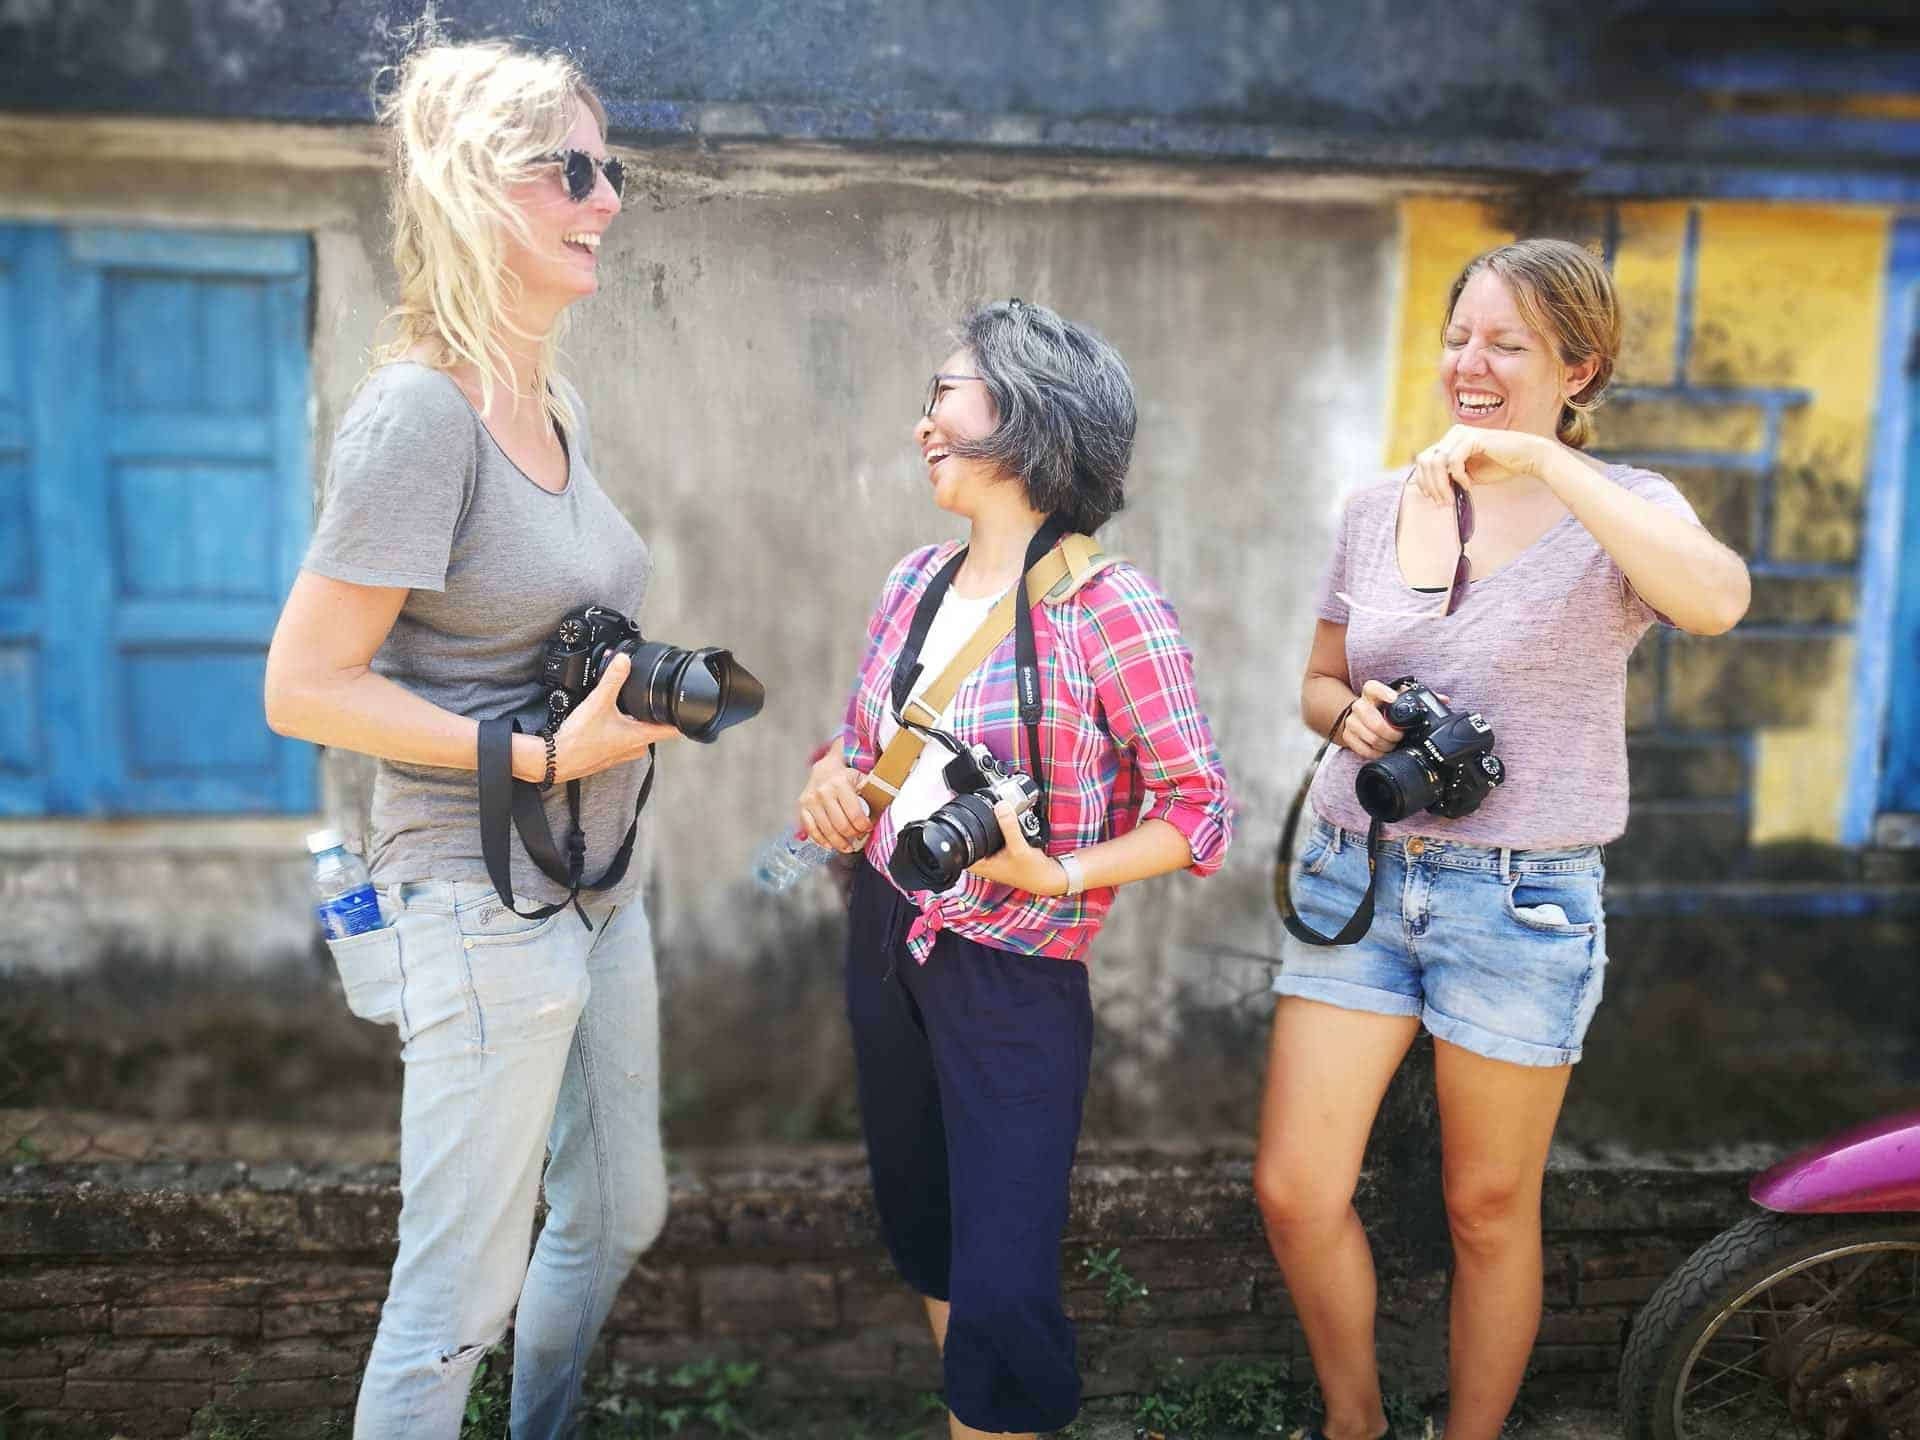 People having fun during hoi an photo tour and workshop